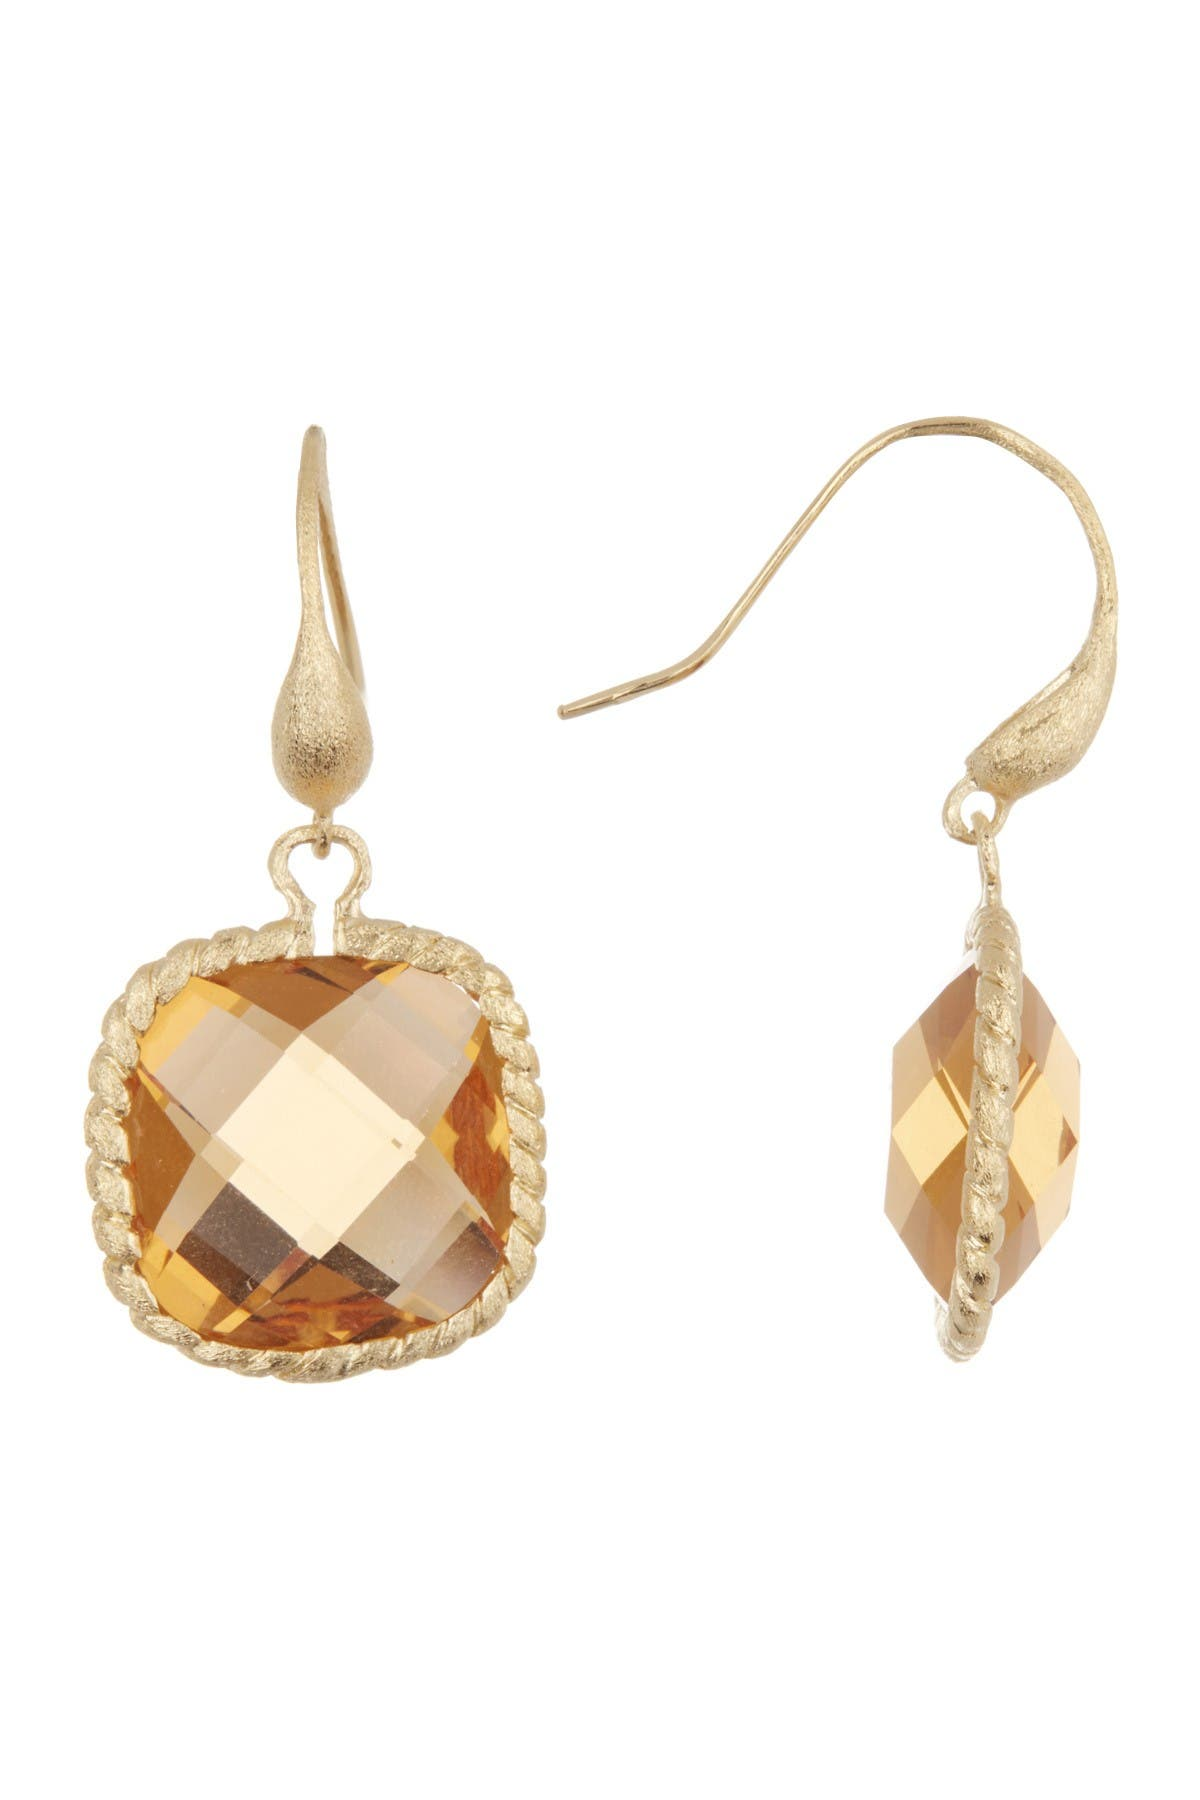 Image of Rivka Friedman 18K Gold Clad Twisted Cable Bezel Cushion Cut Faceted Citrine Crystal Drop Earrings